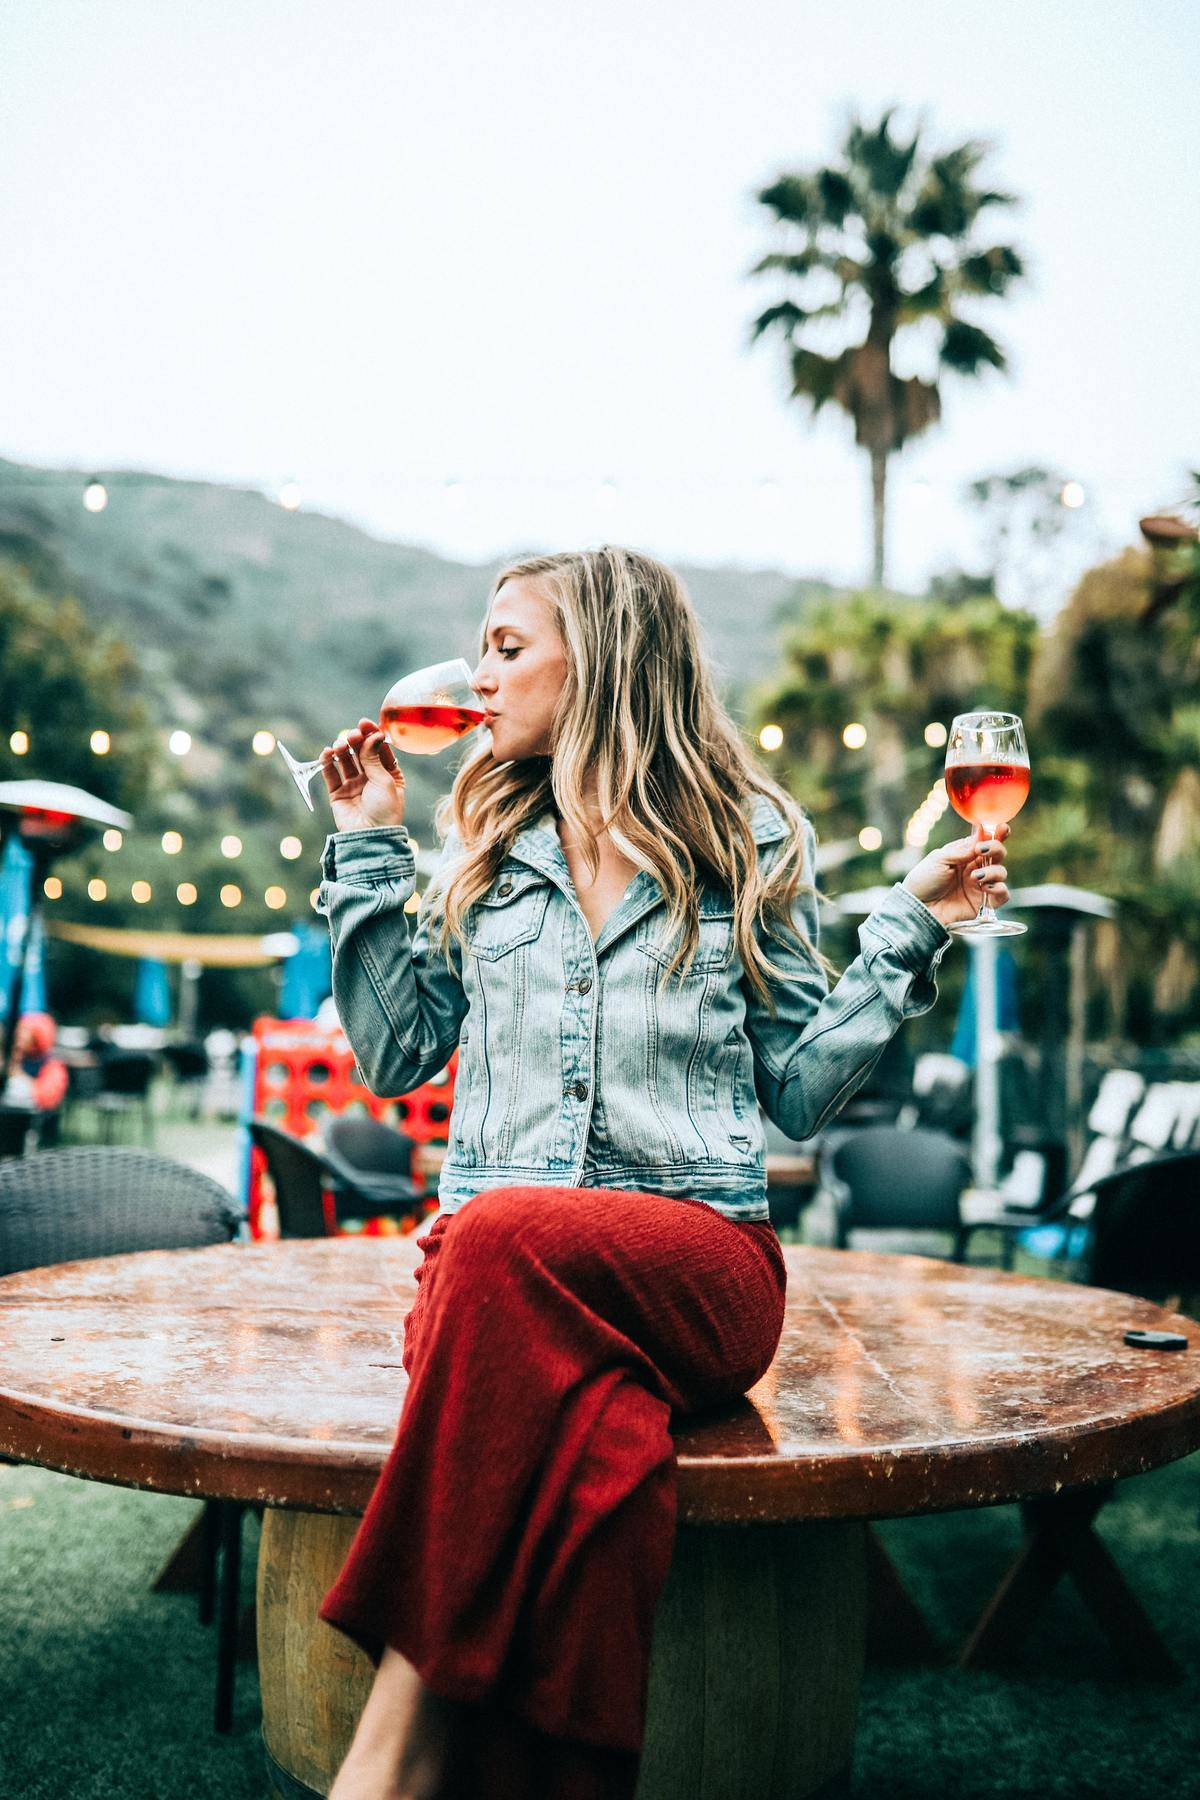 woman sipping from one wine glass while holding another